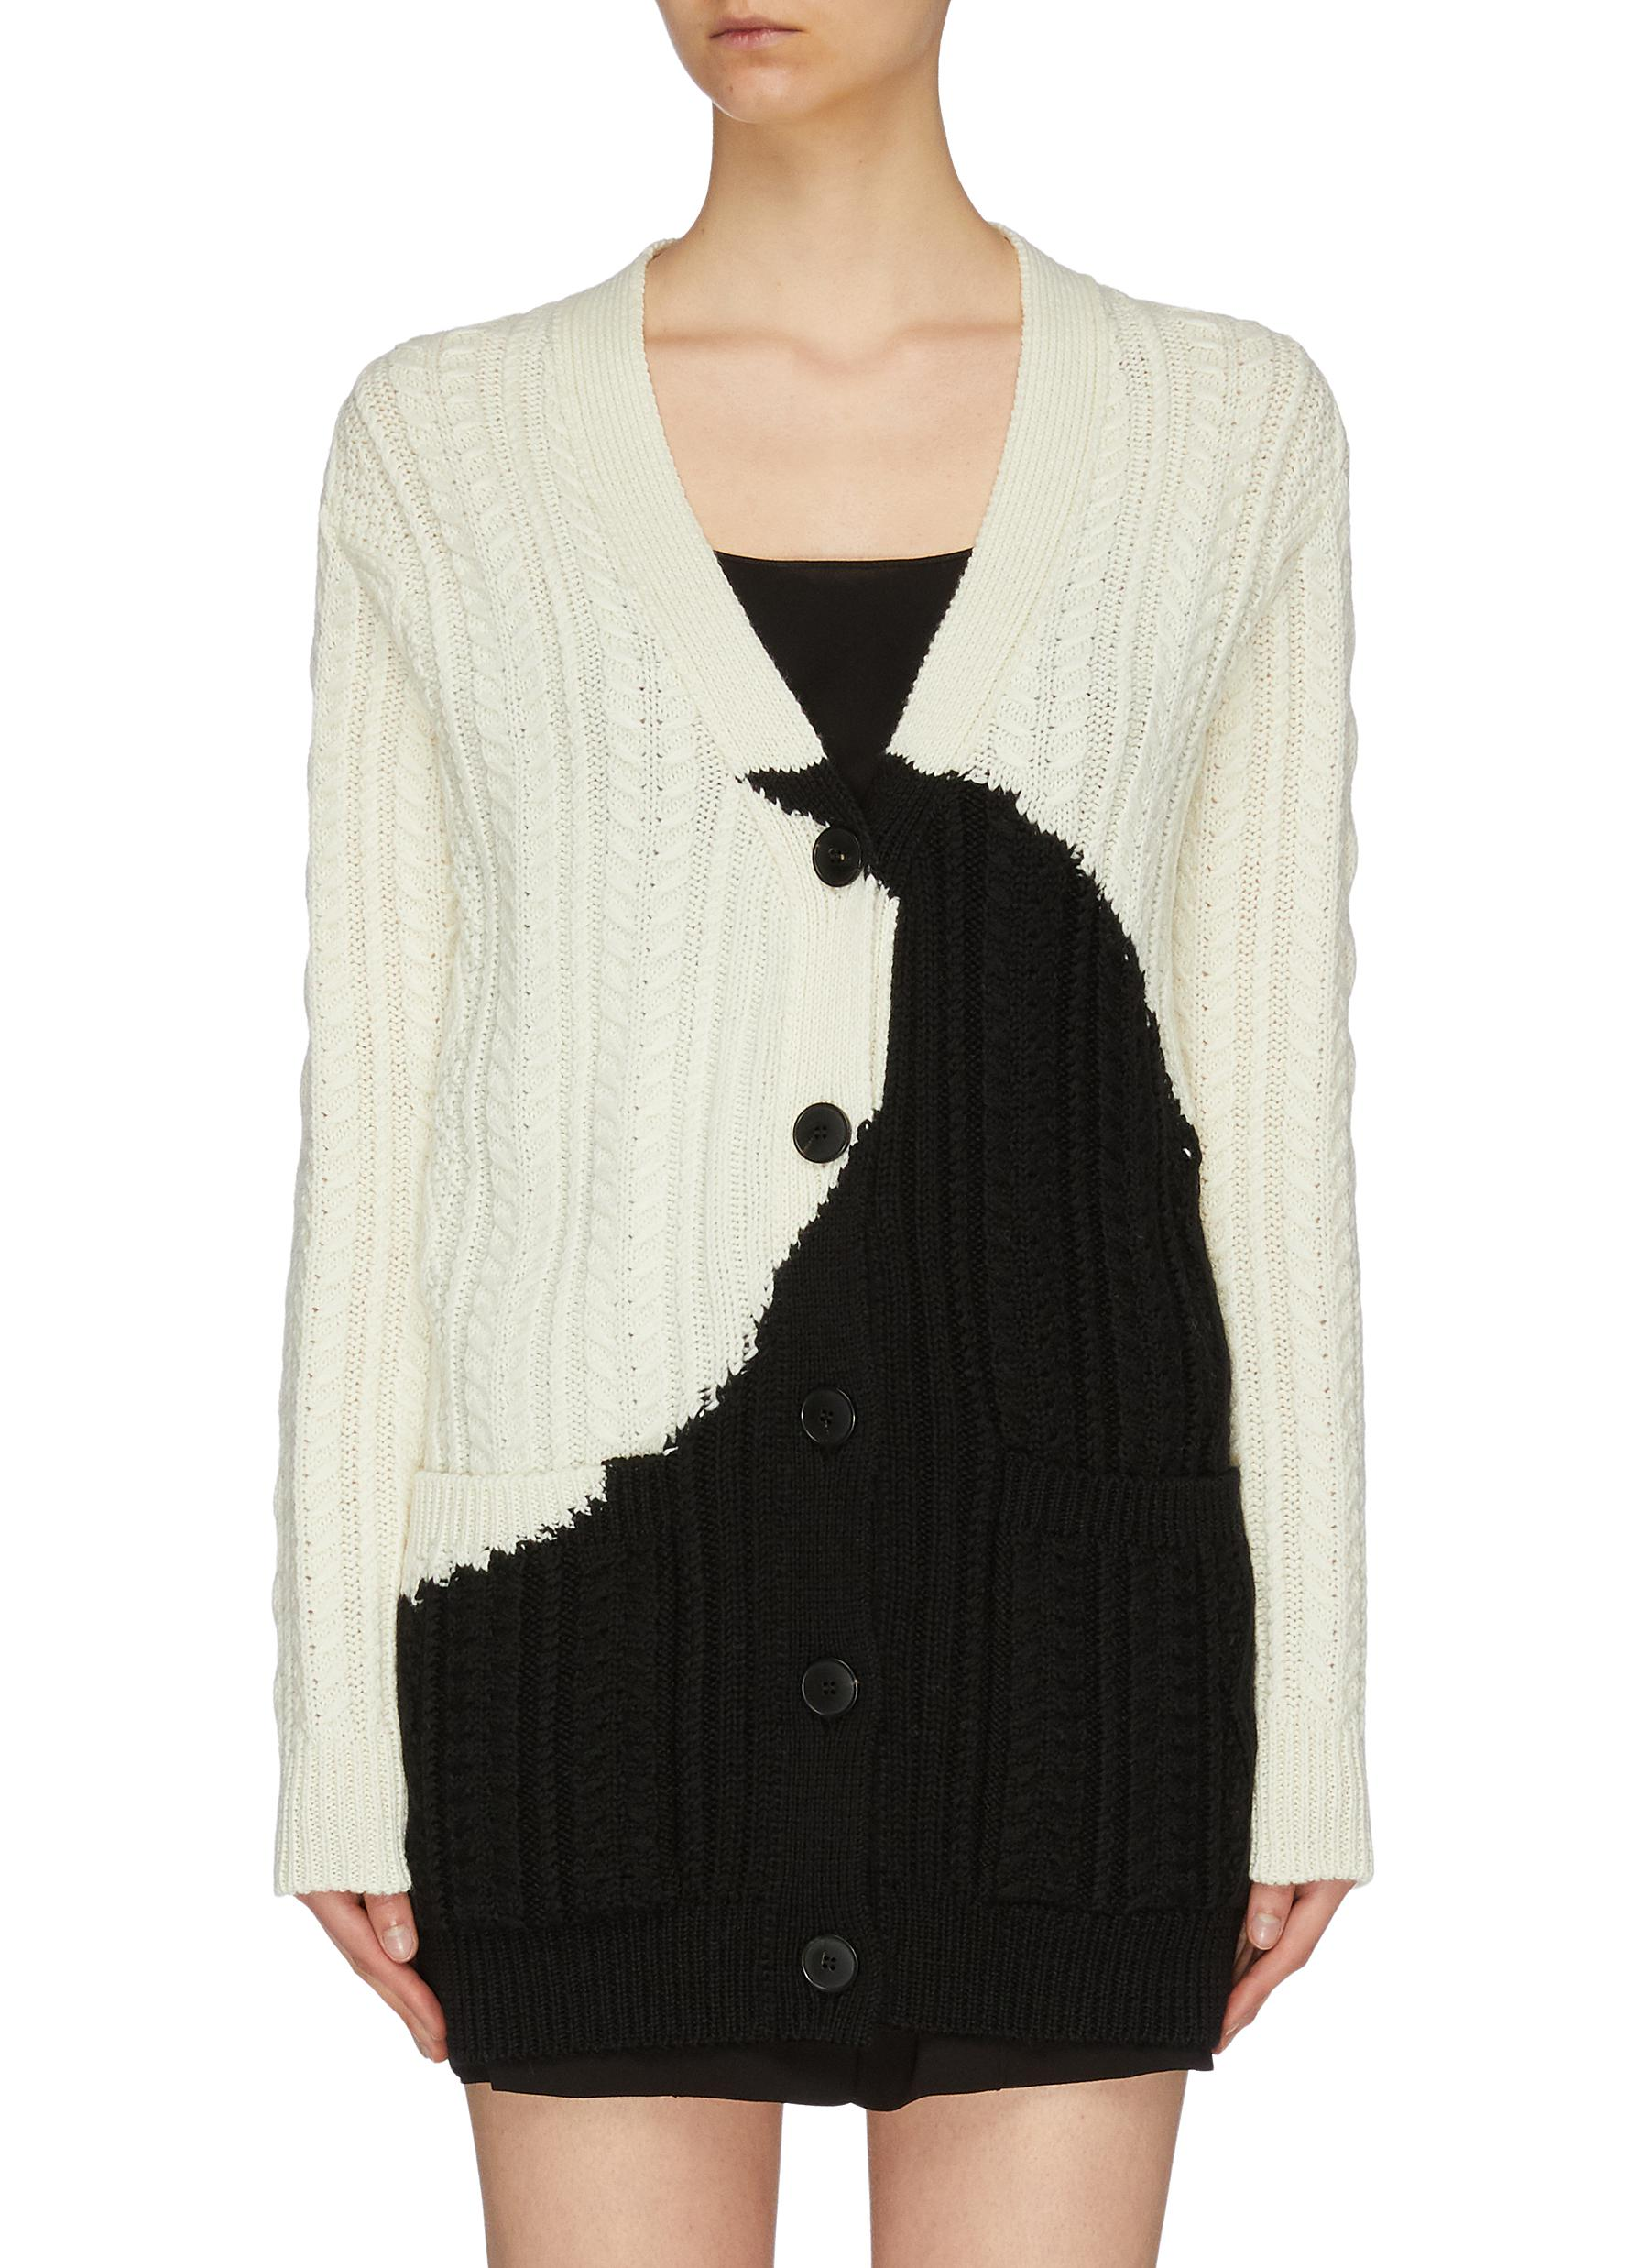 Luna colourblock intarsia virgin wool cable knit cardigan by Valentino